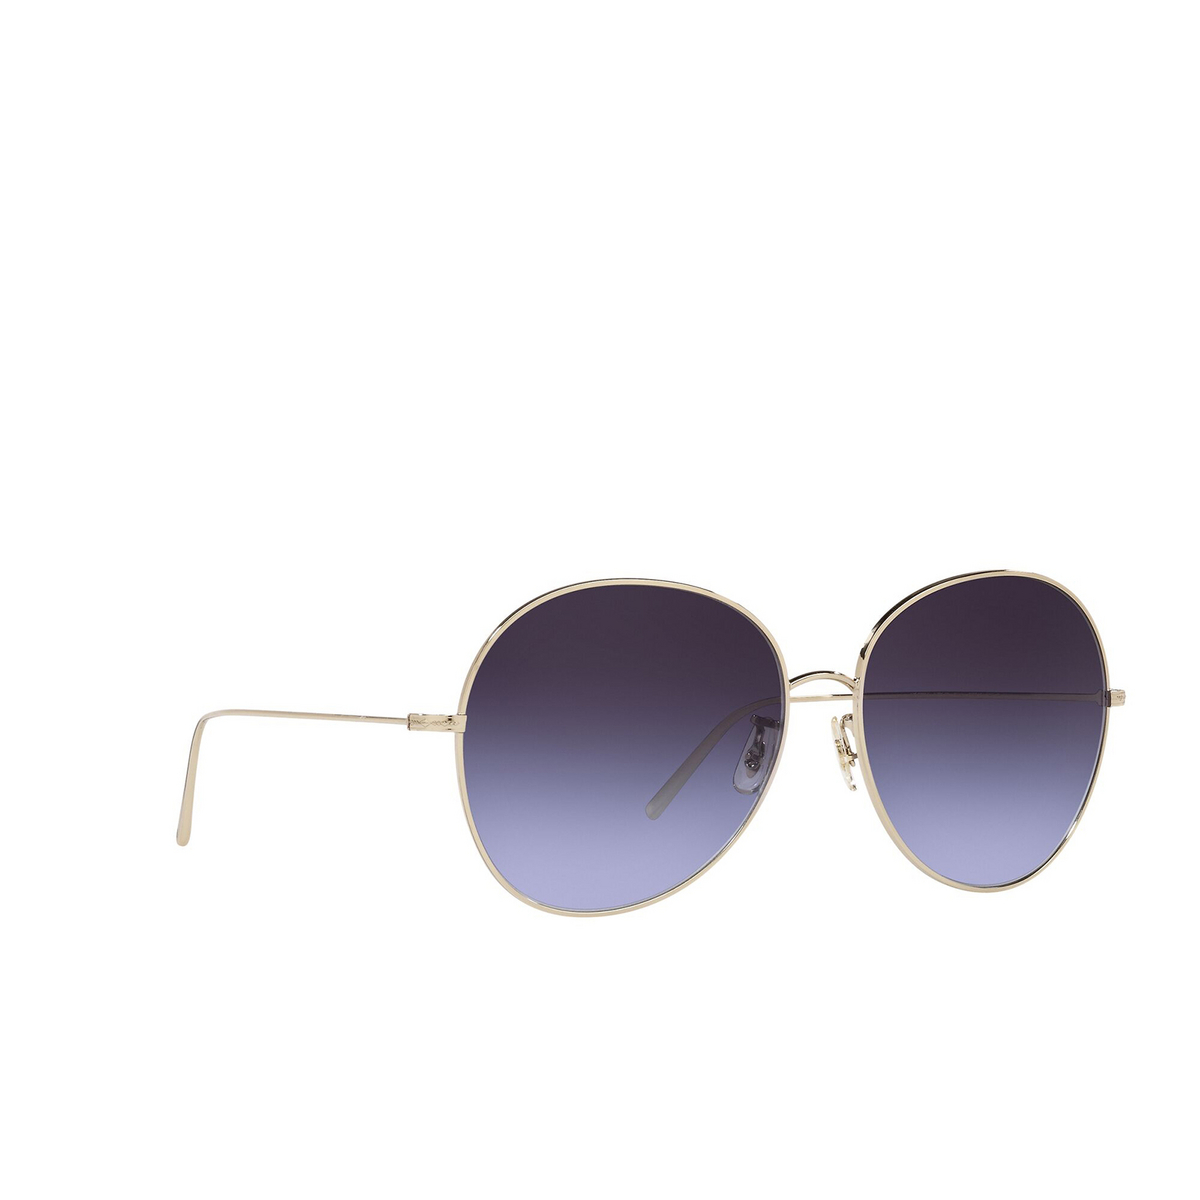 Oliver Peoples® Butterfly Sunglasses: Ysela OV1289S color Soft Gold 503579 - three-quarters view.